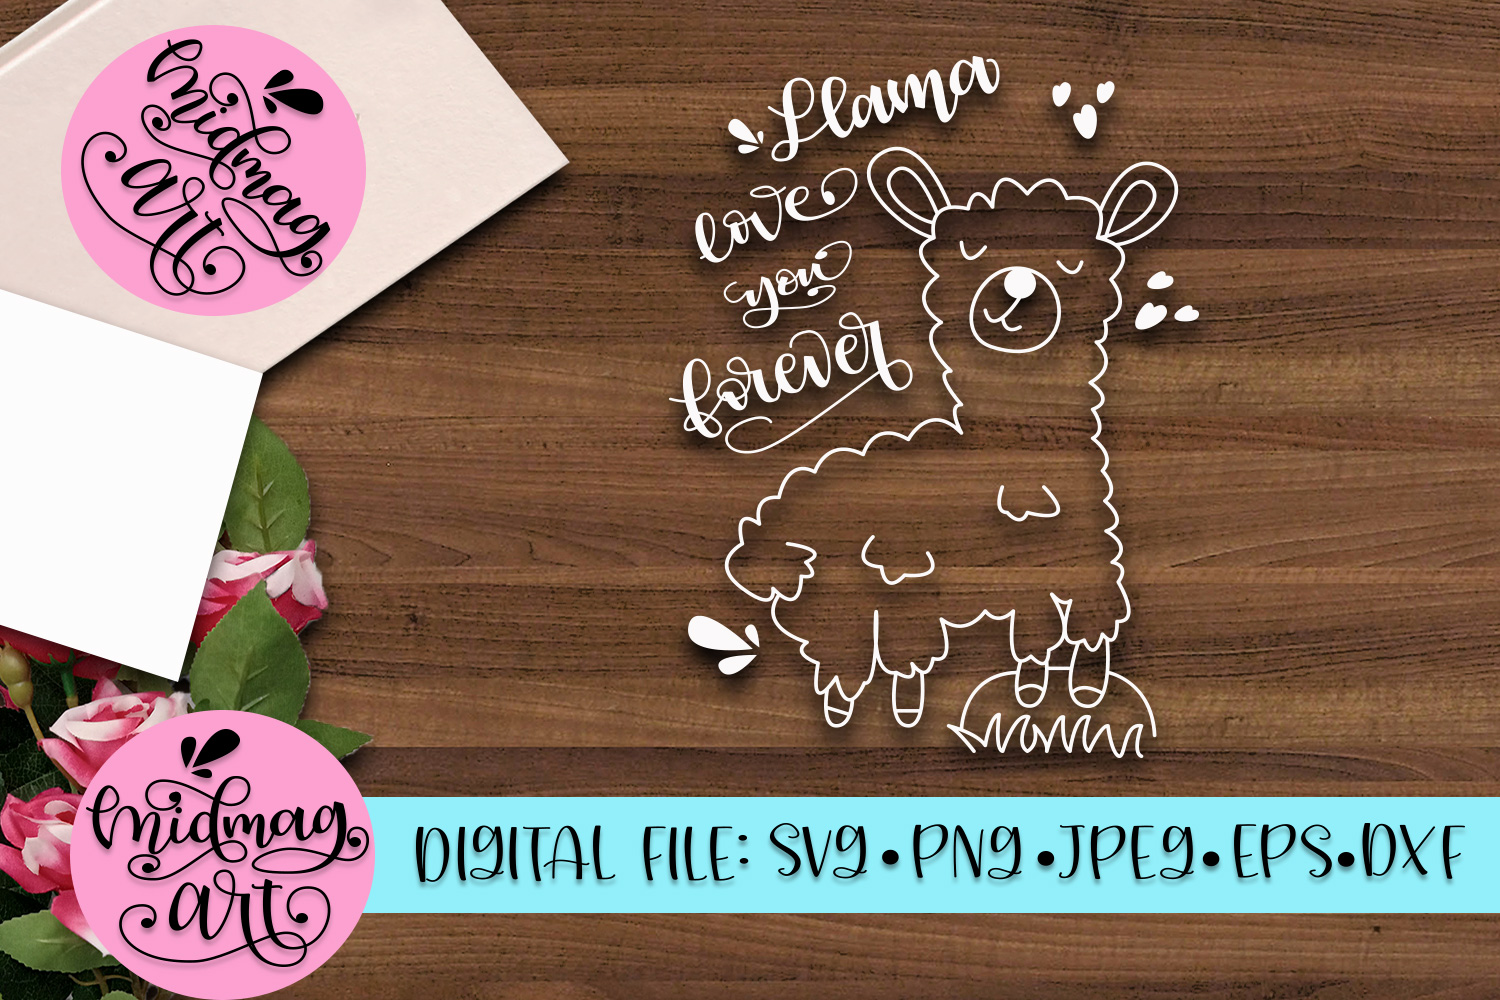 Llama love you forever svg, png, jpeg, eps and dxf example image 2